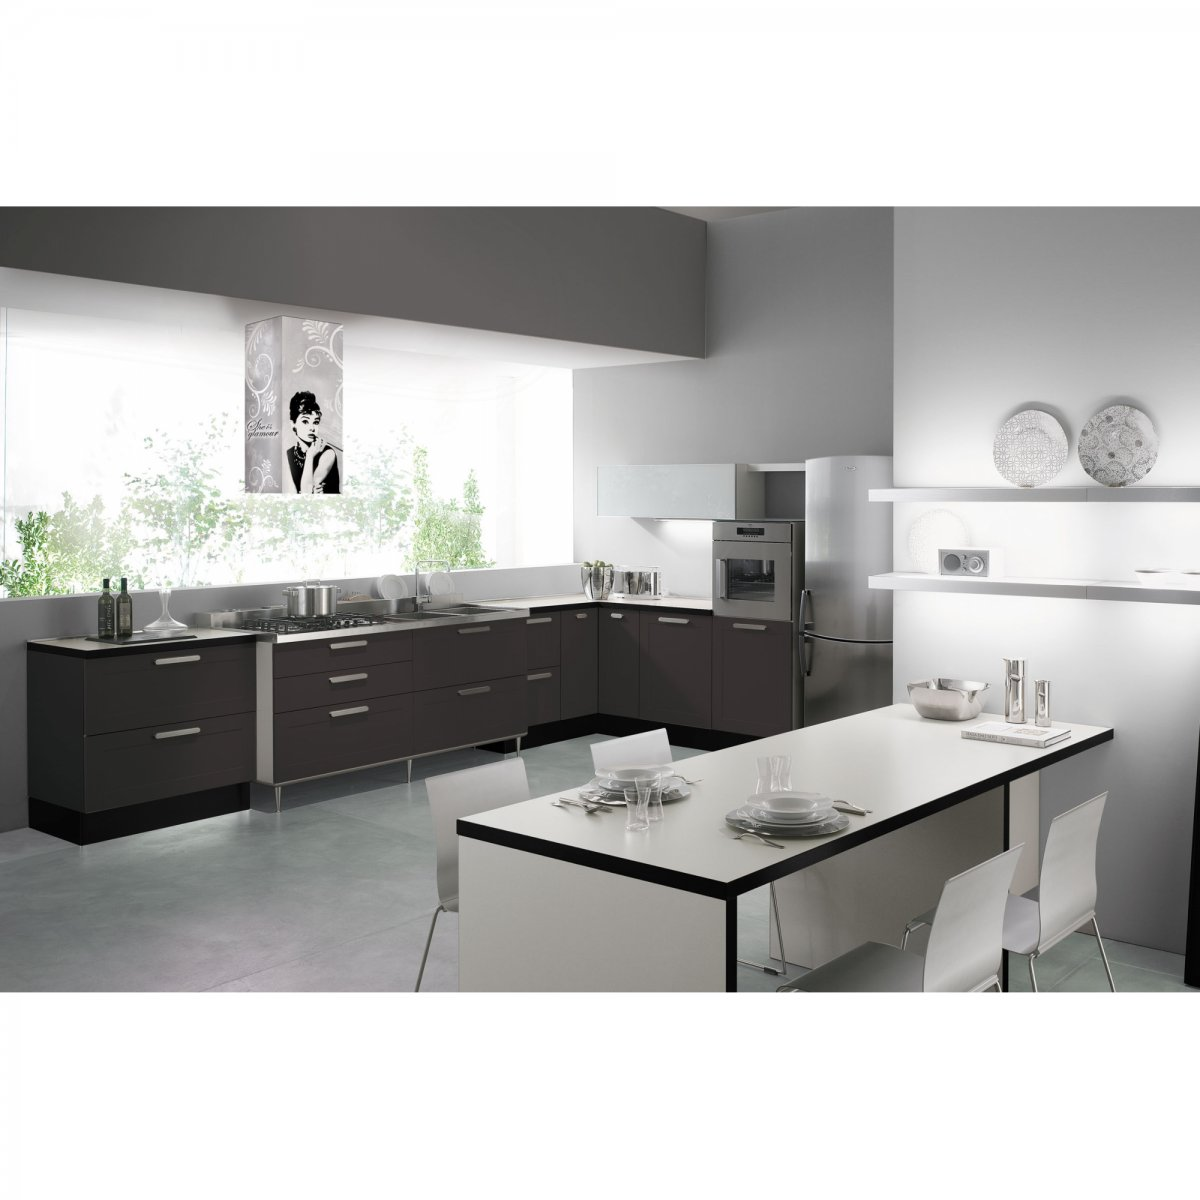 Coolors cappa glamour isola 40 coolors elettrodomestici for Cappa isola